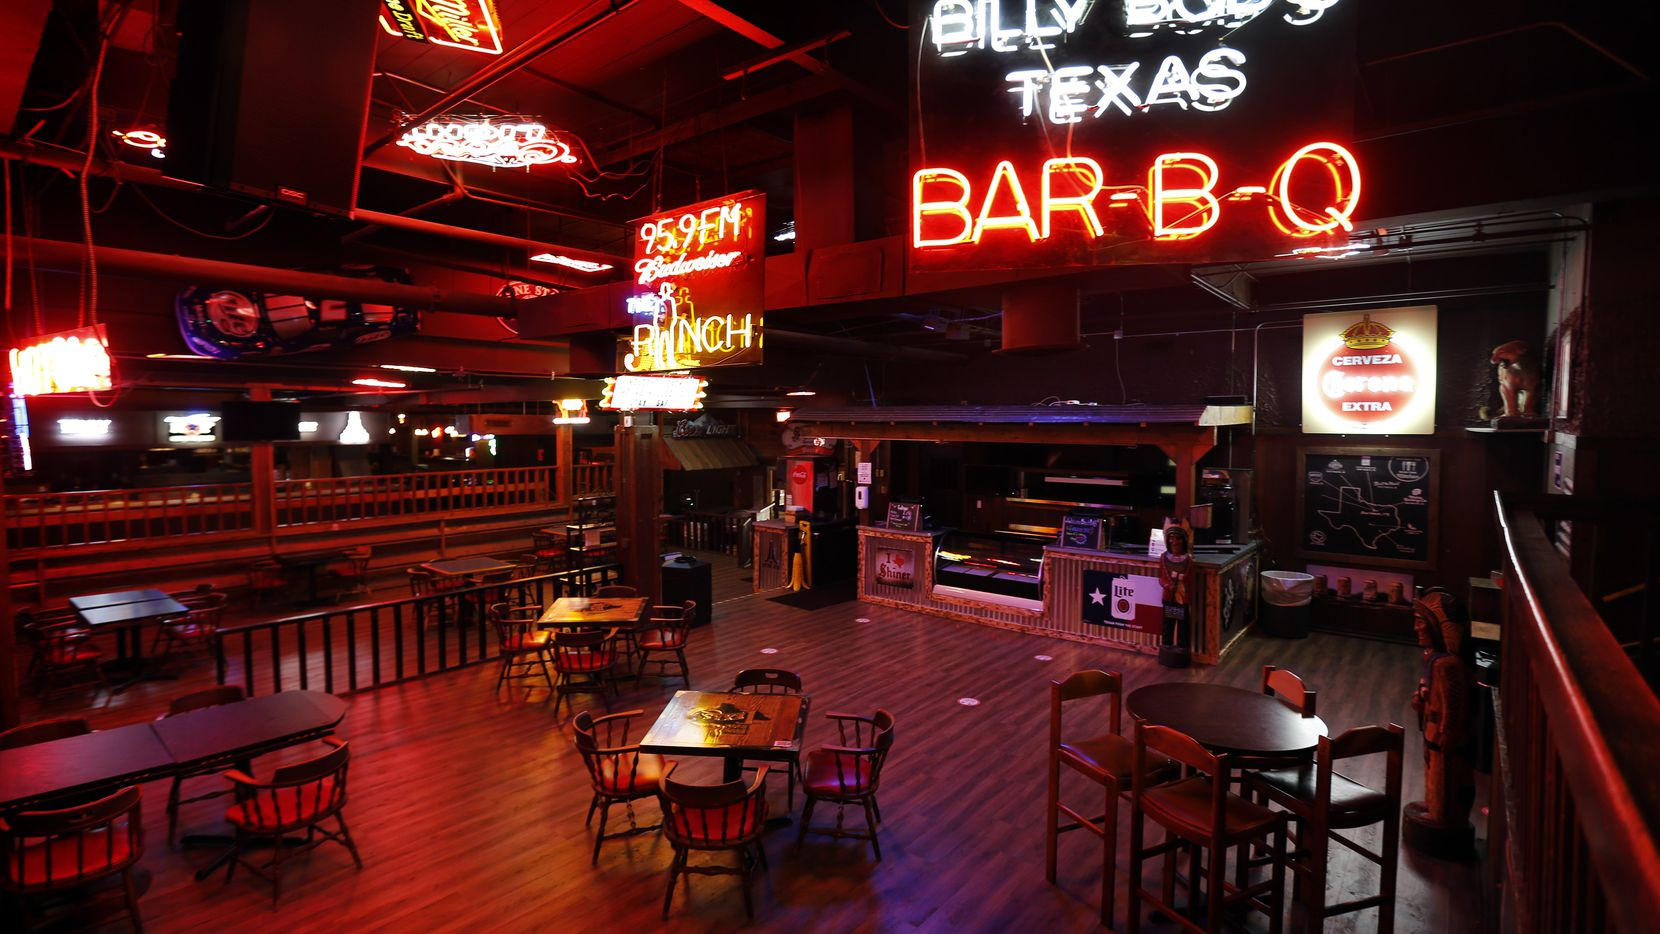 Billy Bob's Texas closed March 13 because of restrictions set in place to curb the spread of COVID-19. It reopened June 18, then closed again June 26, in accordance with Gov. Greg Abbott's bar shutdown order. After redoing some paperwork with TABC, Billy Bob's Texas plans to reopen Aug. 13, 2020 as a restaurant.